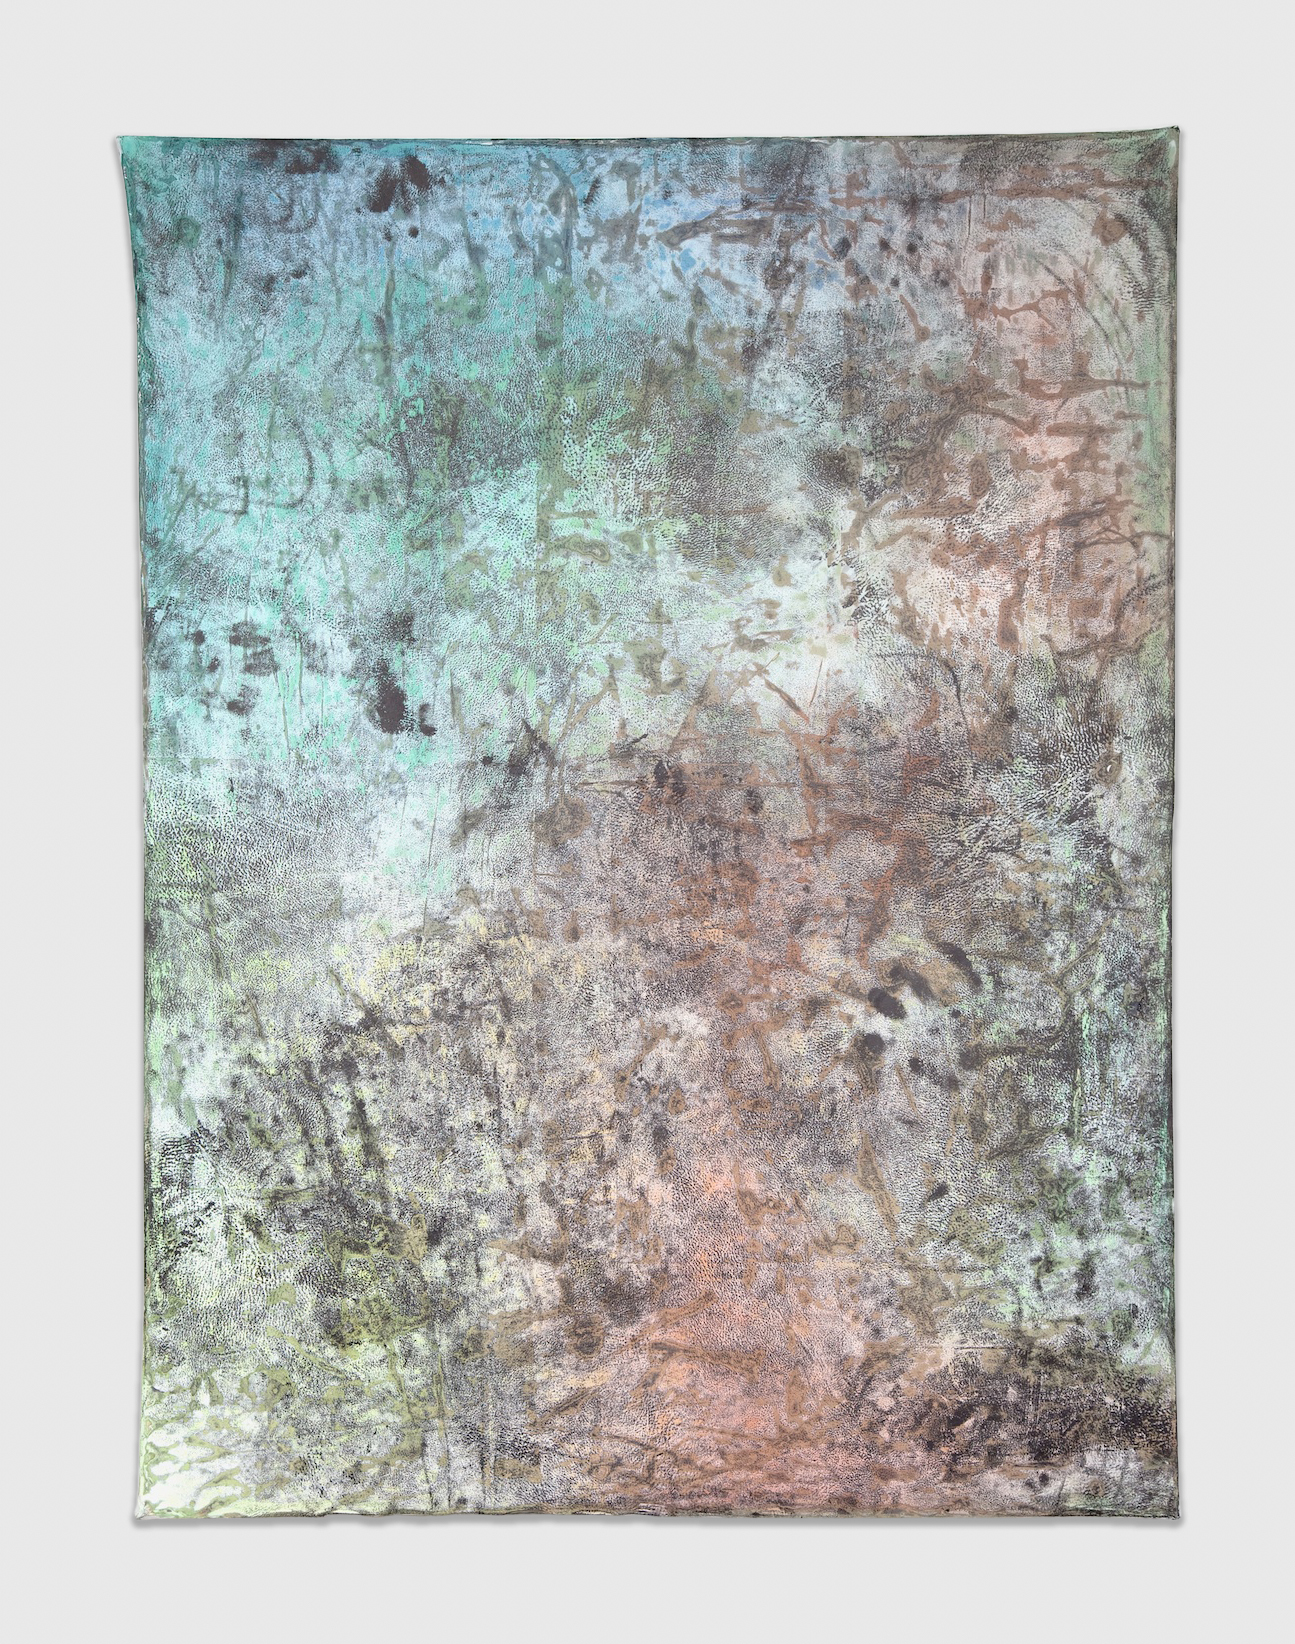 Jay Heikes  Subterranean Isle  2011 Paper, aluminum, dry pigment, ink, and wood 48 ¼h x 36 ¼w in JH034